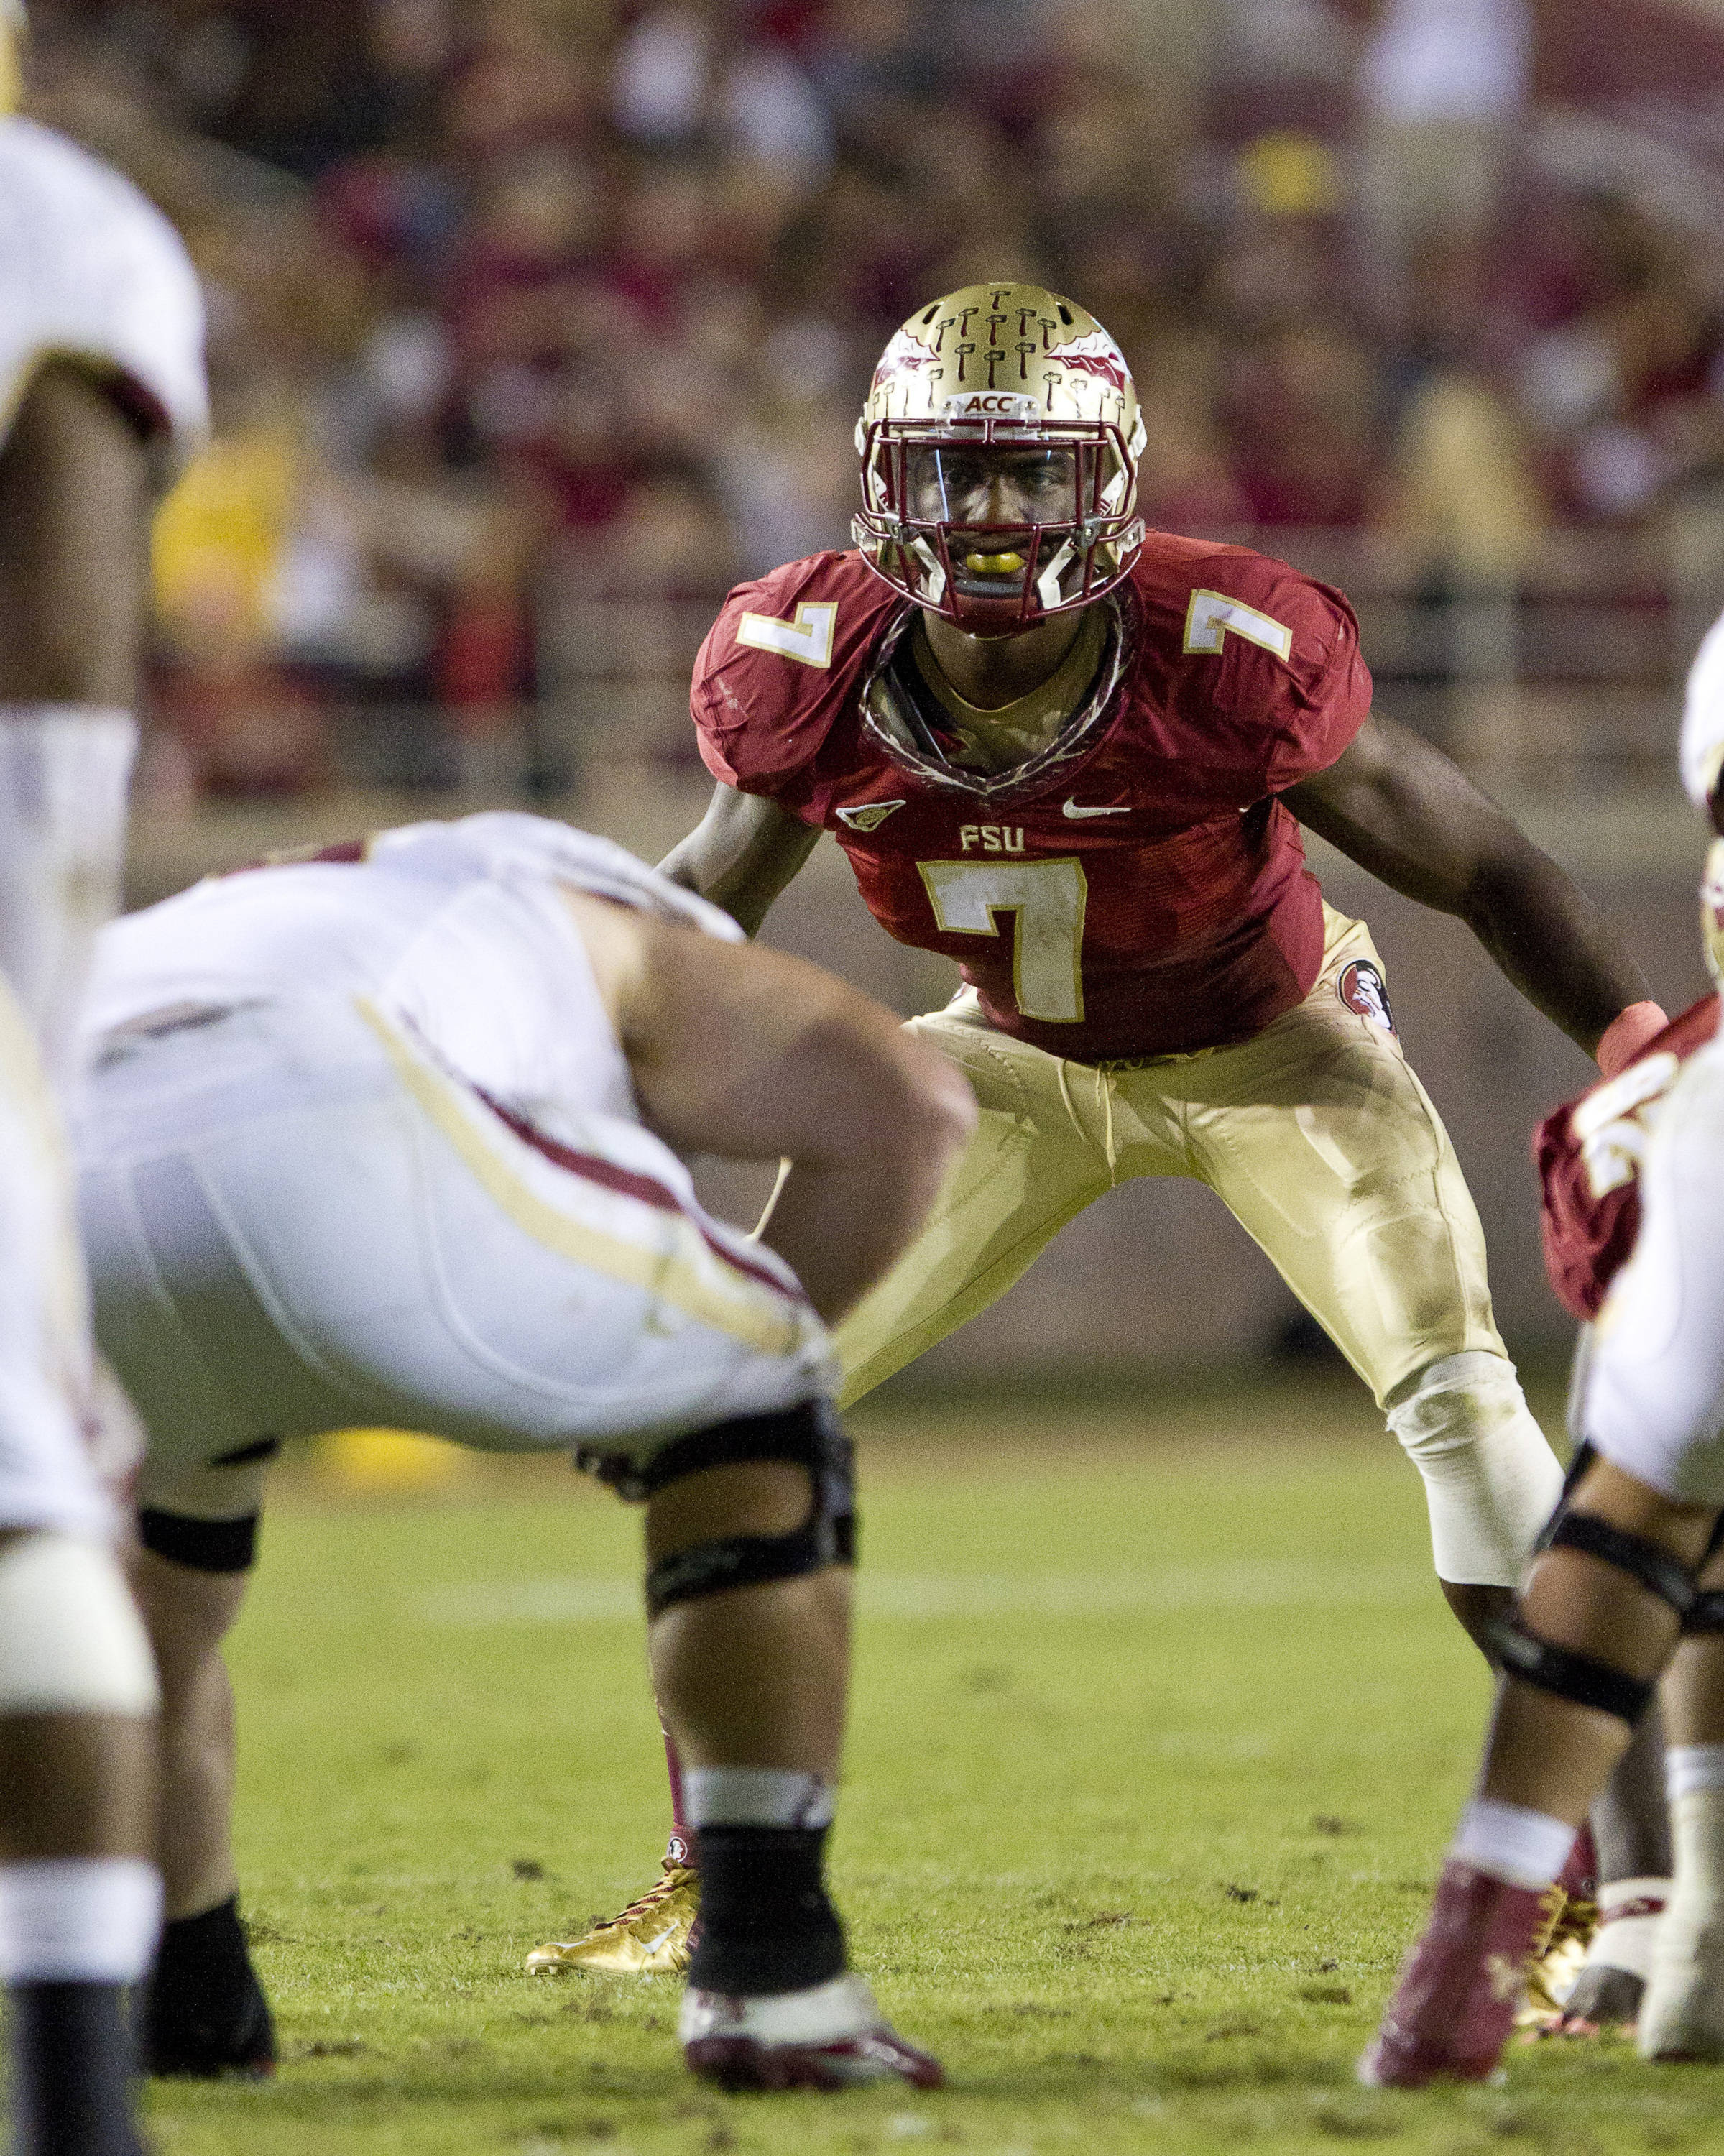 Christian Jones (7) lines up on defense during the FSU vs Boston College football game on October 13, 2012 in Tallahassee, Fla.